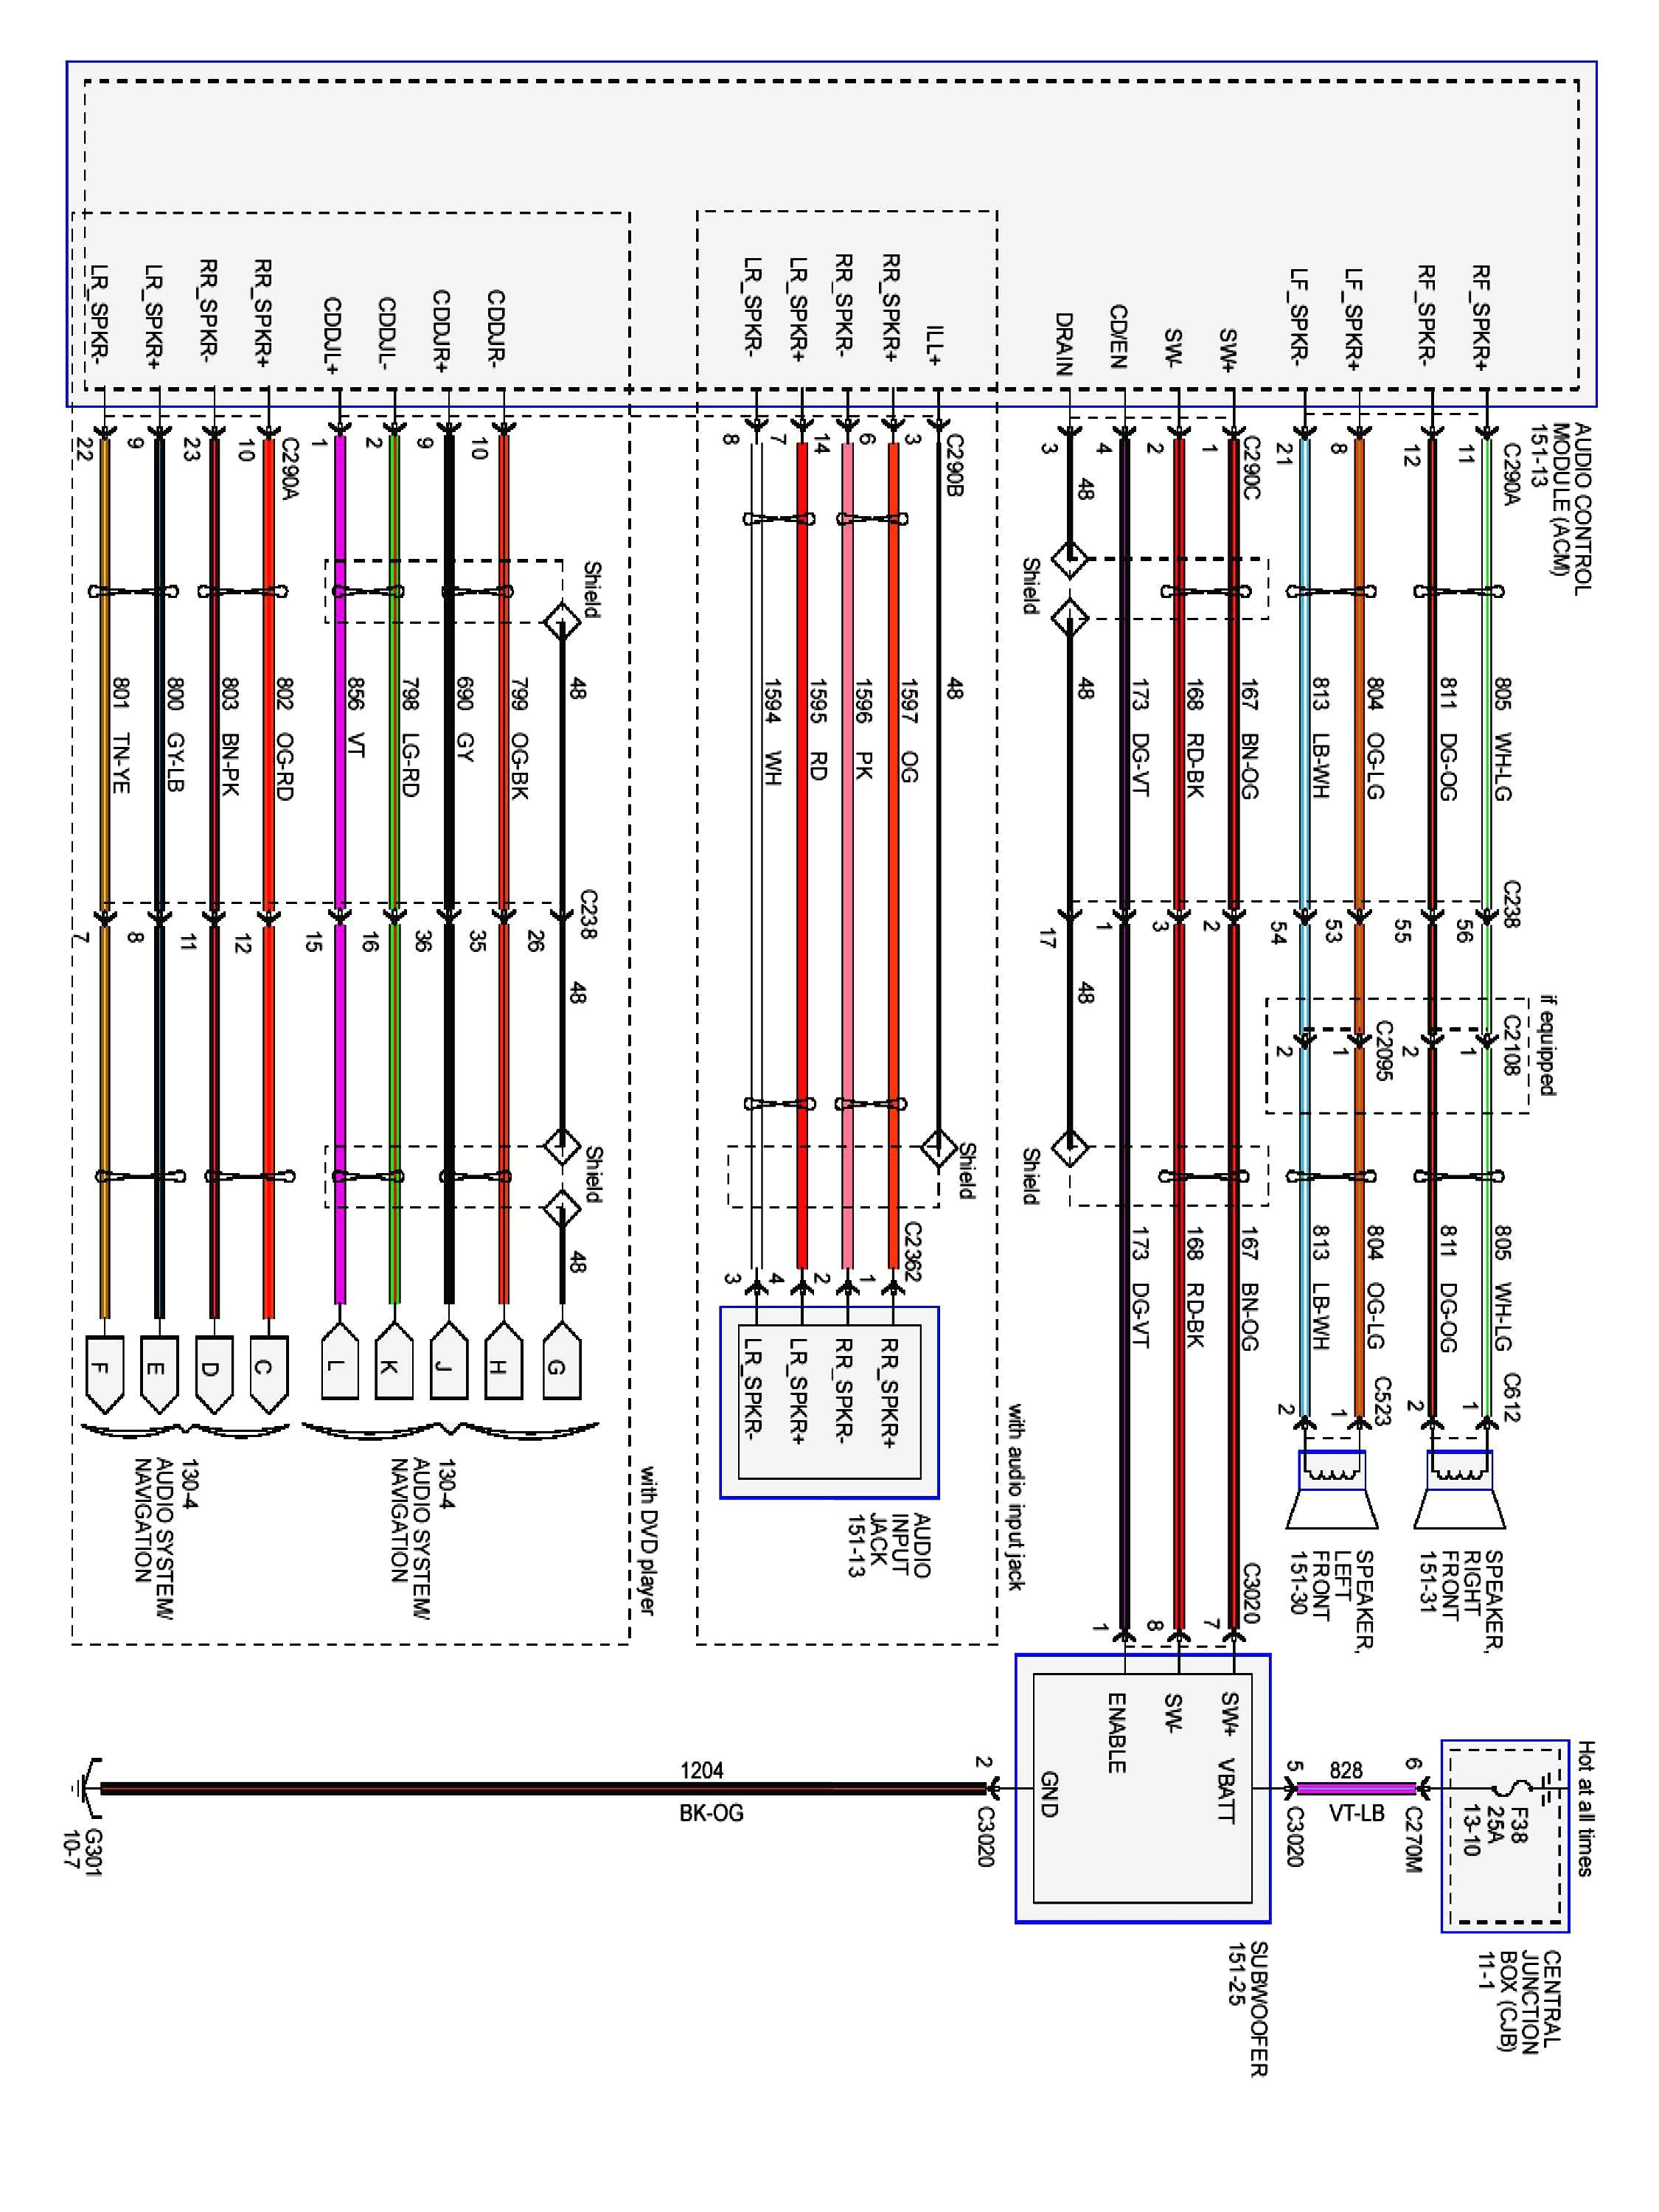 2004 Ford Super Duty Radio Wiring Diagram Simple Electronic F550 F250 Collection Sample Rh Faceitsalon Com 2000 Fuse Panel